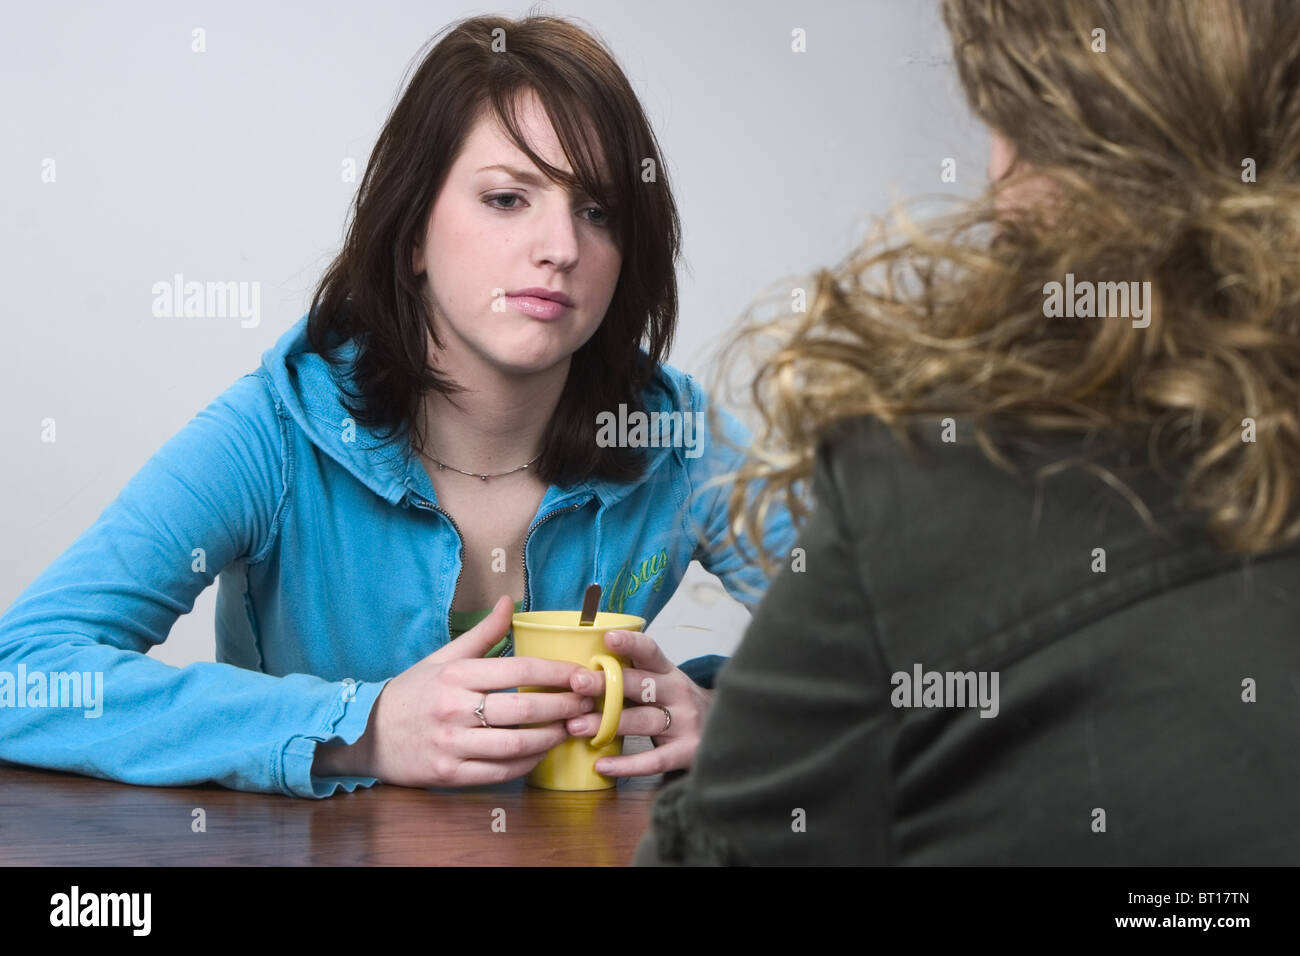 Two introspective women drinking coffee in silence - Stock Image